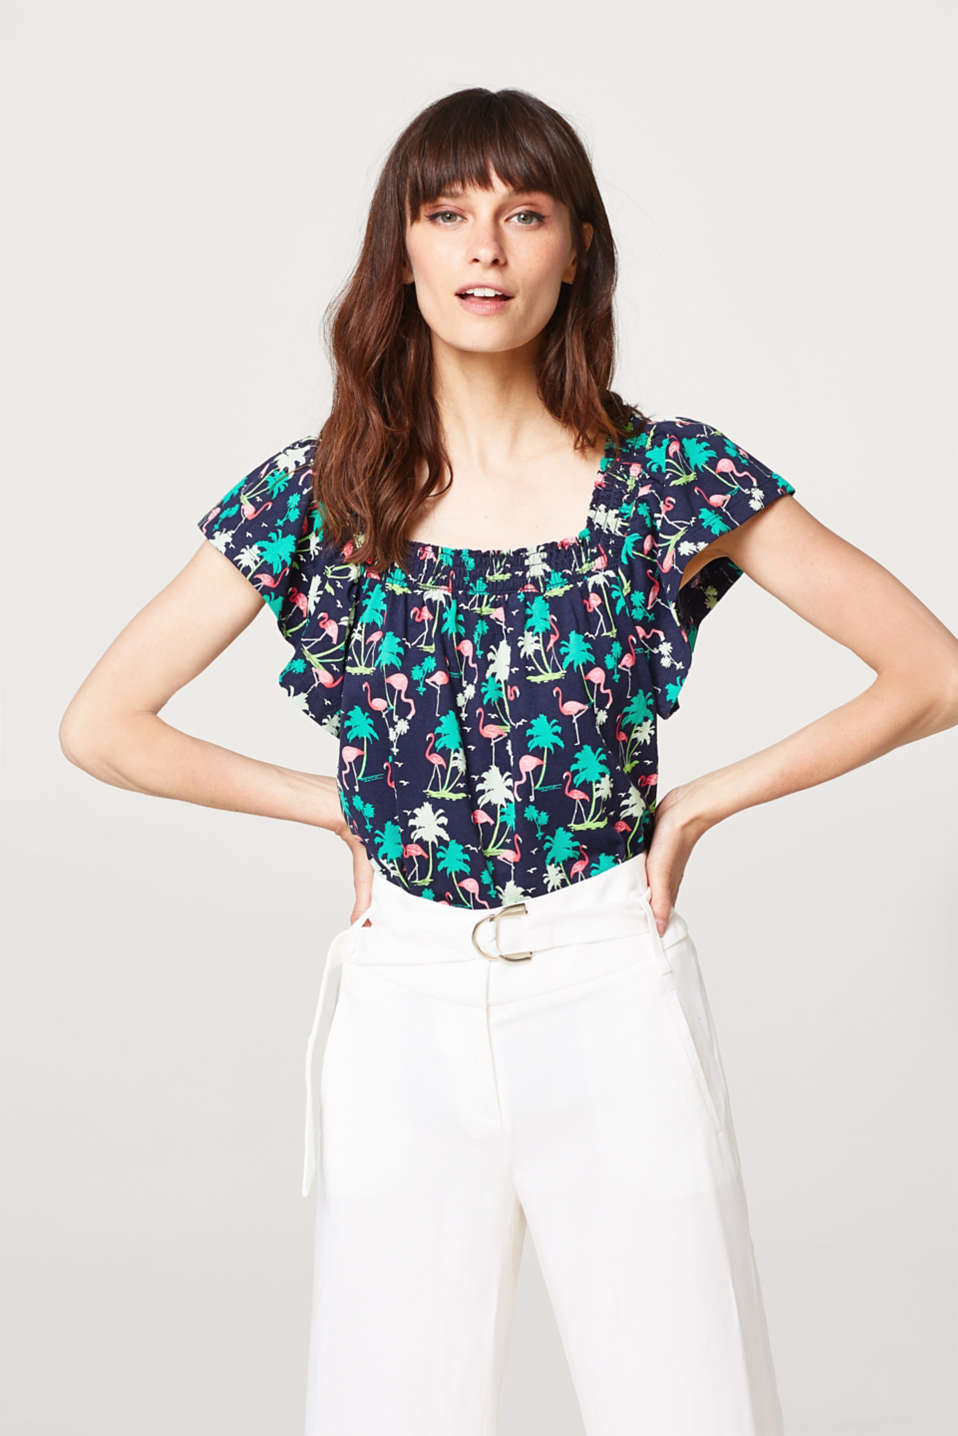 Esprit - Print T-shirt with a square neckline, 100% cotton